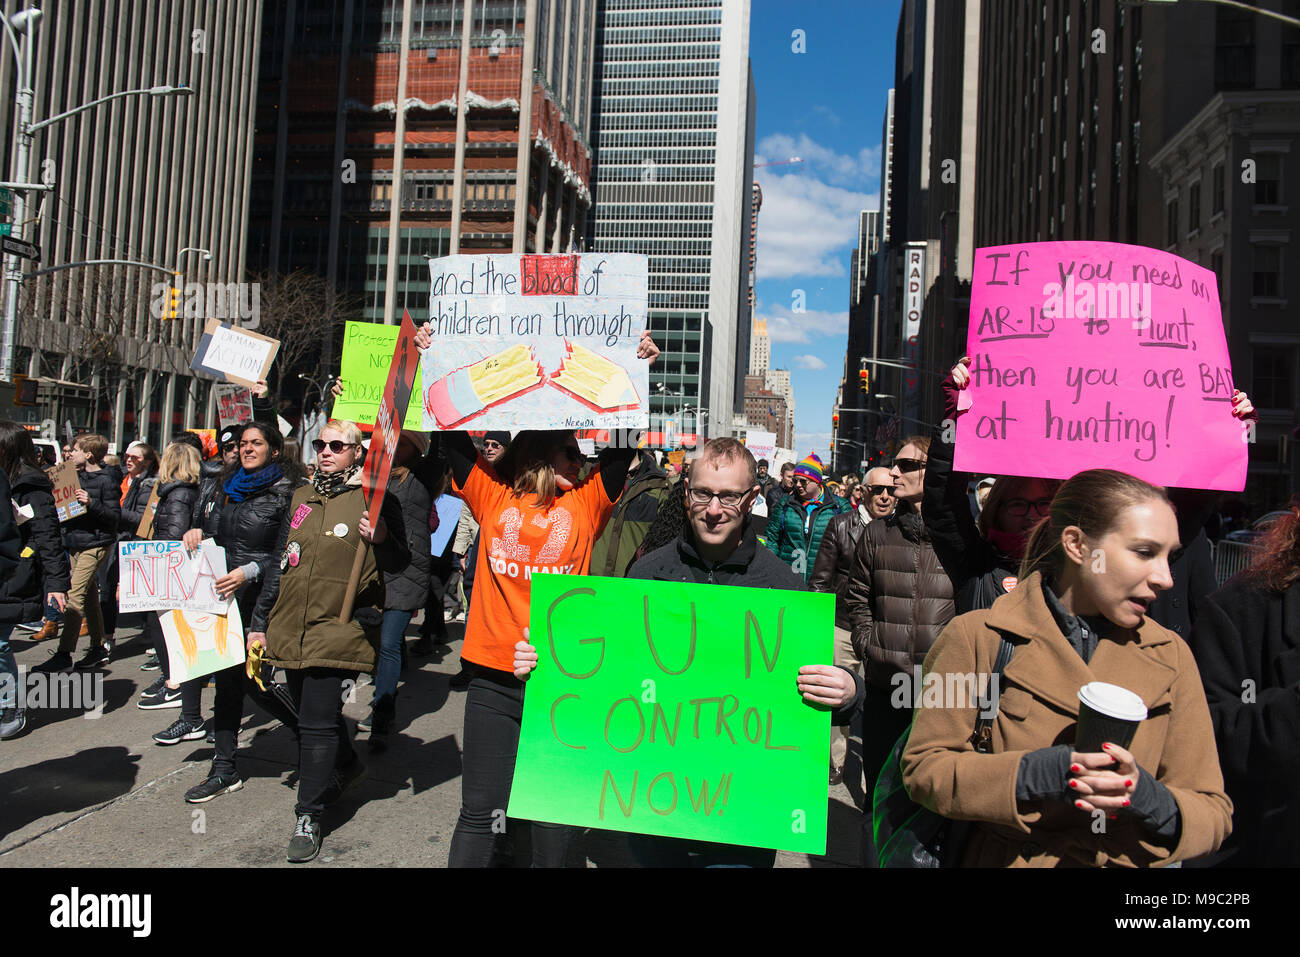 New York City, USA. 24th March, 2018. March for Our Lives in New York City, New York. March 24th, 2018. Credit: Beth Dixson/Alamy Live News - Stock Image